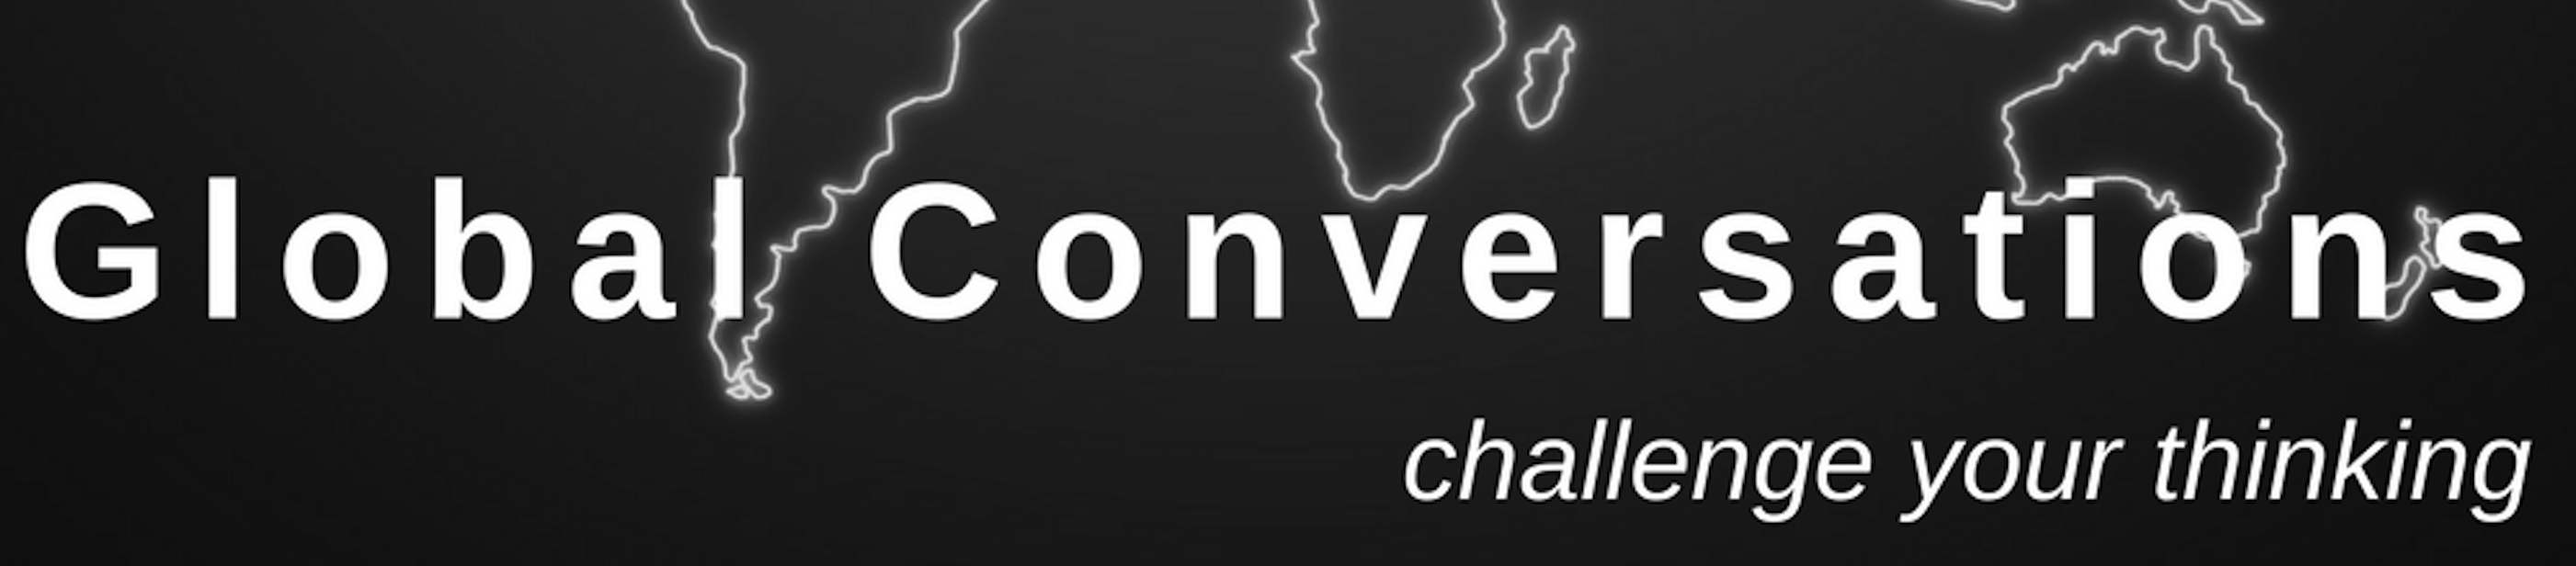 Global Conversation Webpage Banner_Utah Council for Citizen Diplomacy